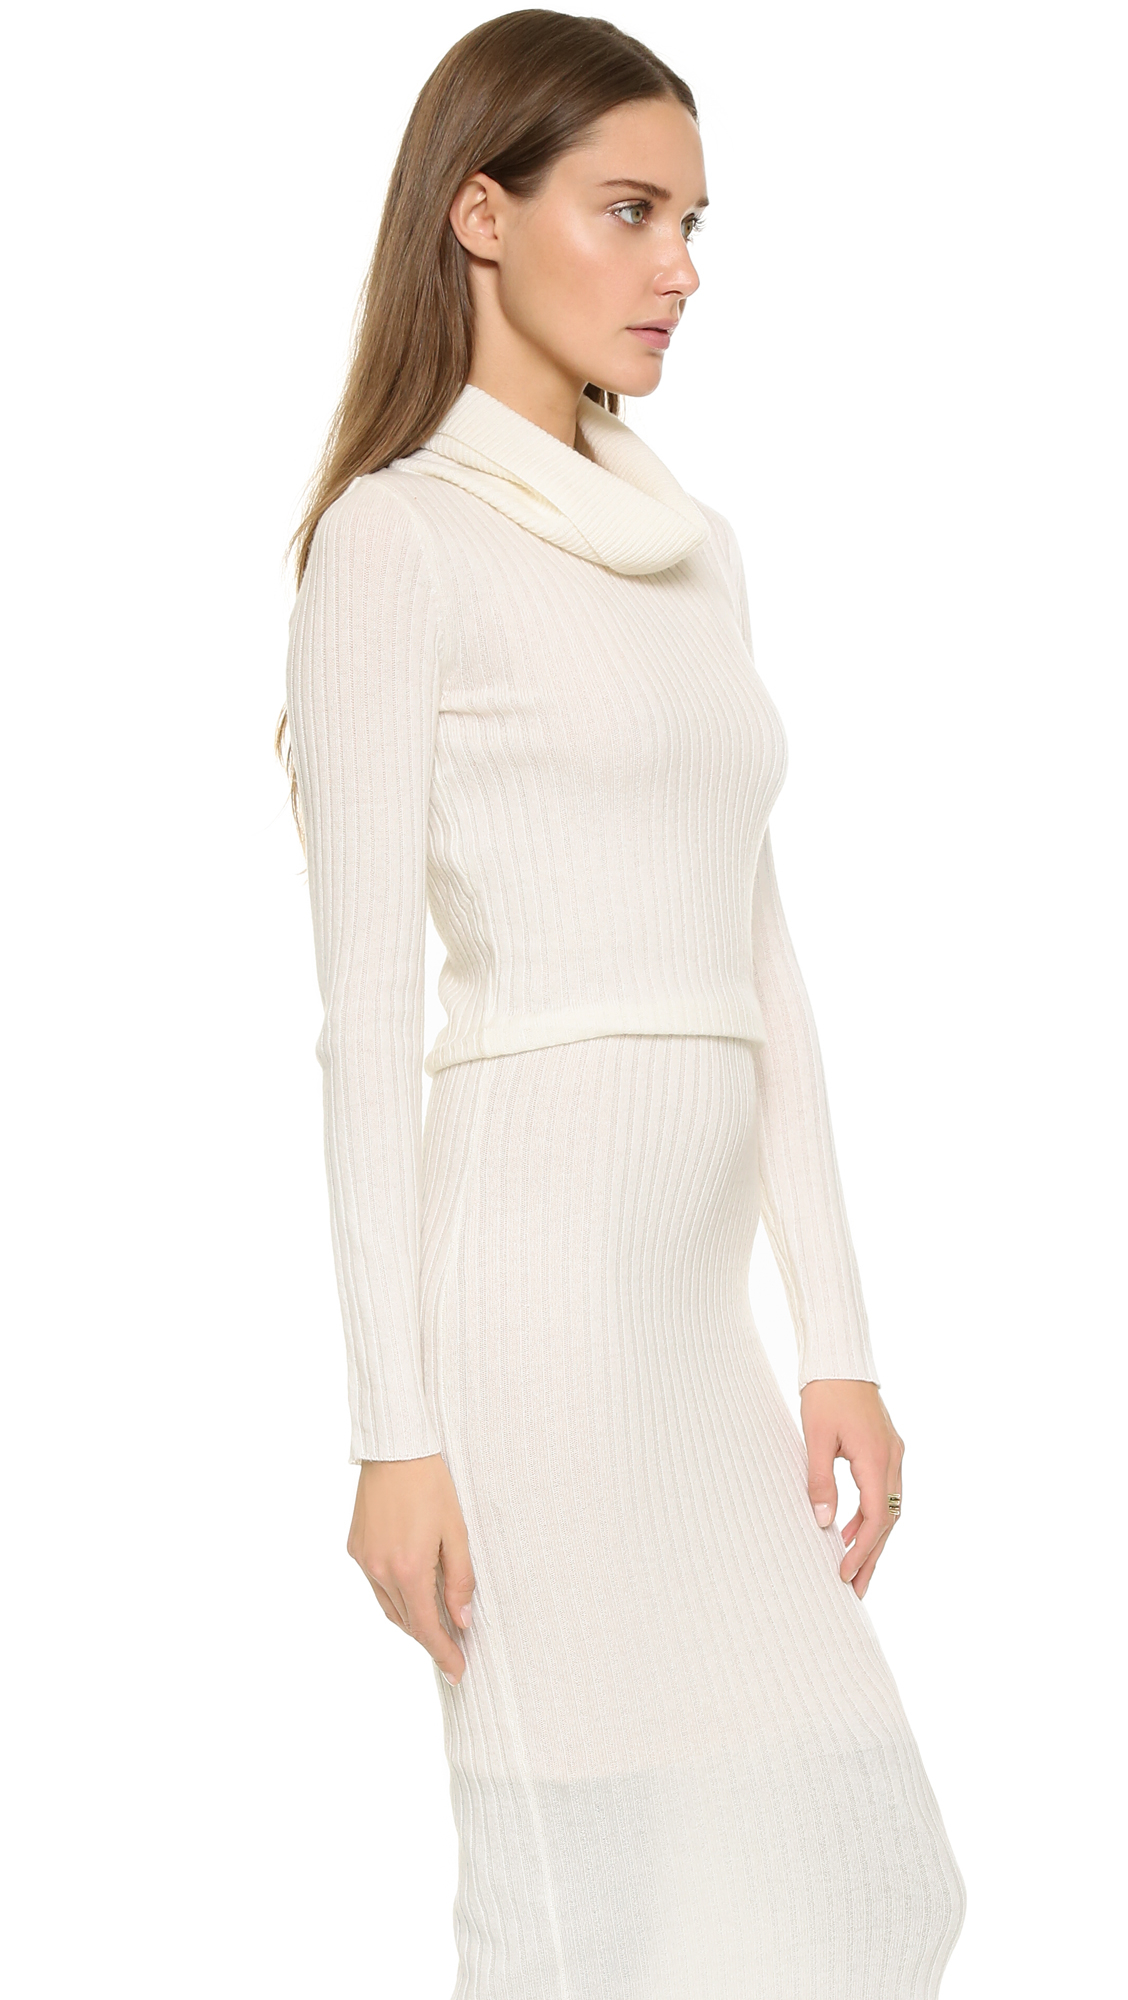 fe6fae4ee4 Alice + Olivia Hailee Turtleneck Sweater Dress - Cream in Natural - Lyst